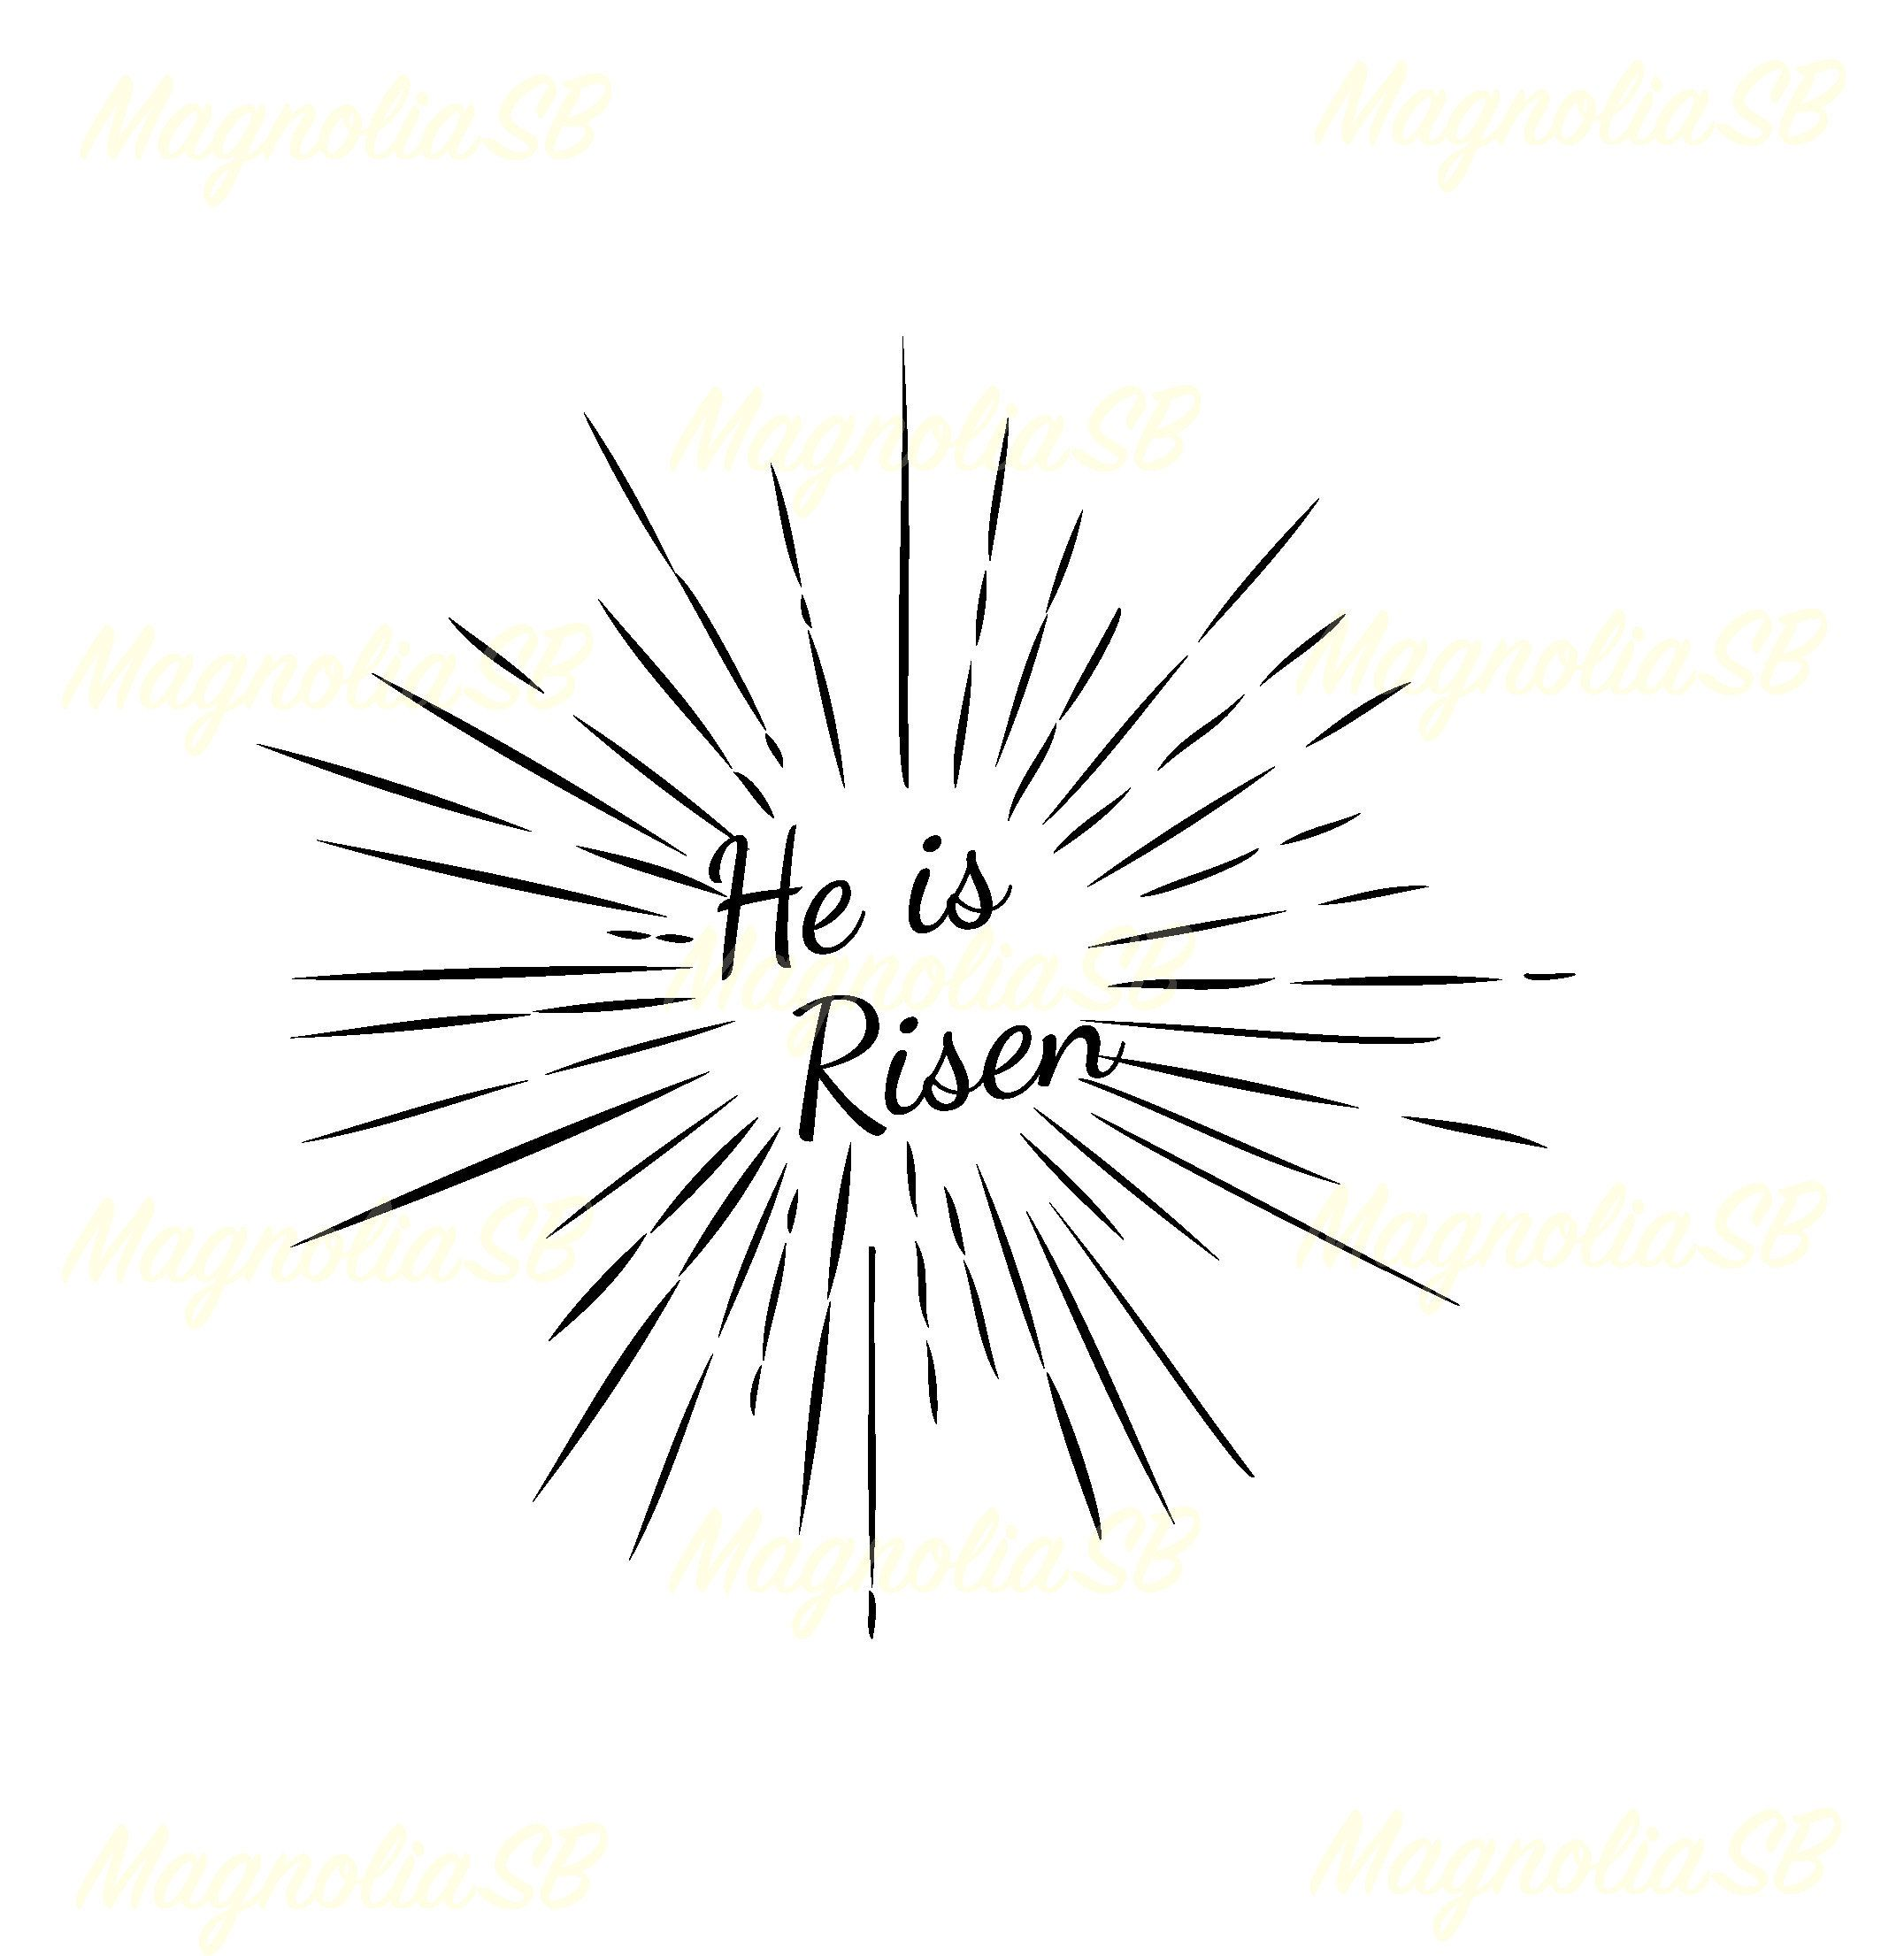 hight resolution of he is risen svg he is risen dxf he is risen clipart cutting he is risen vector he is risen shape easter rays he is risen silhouette